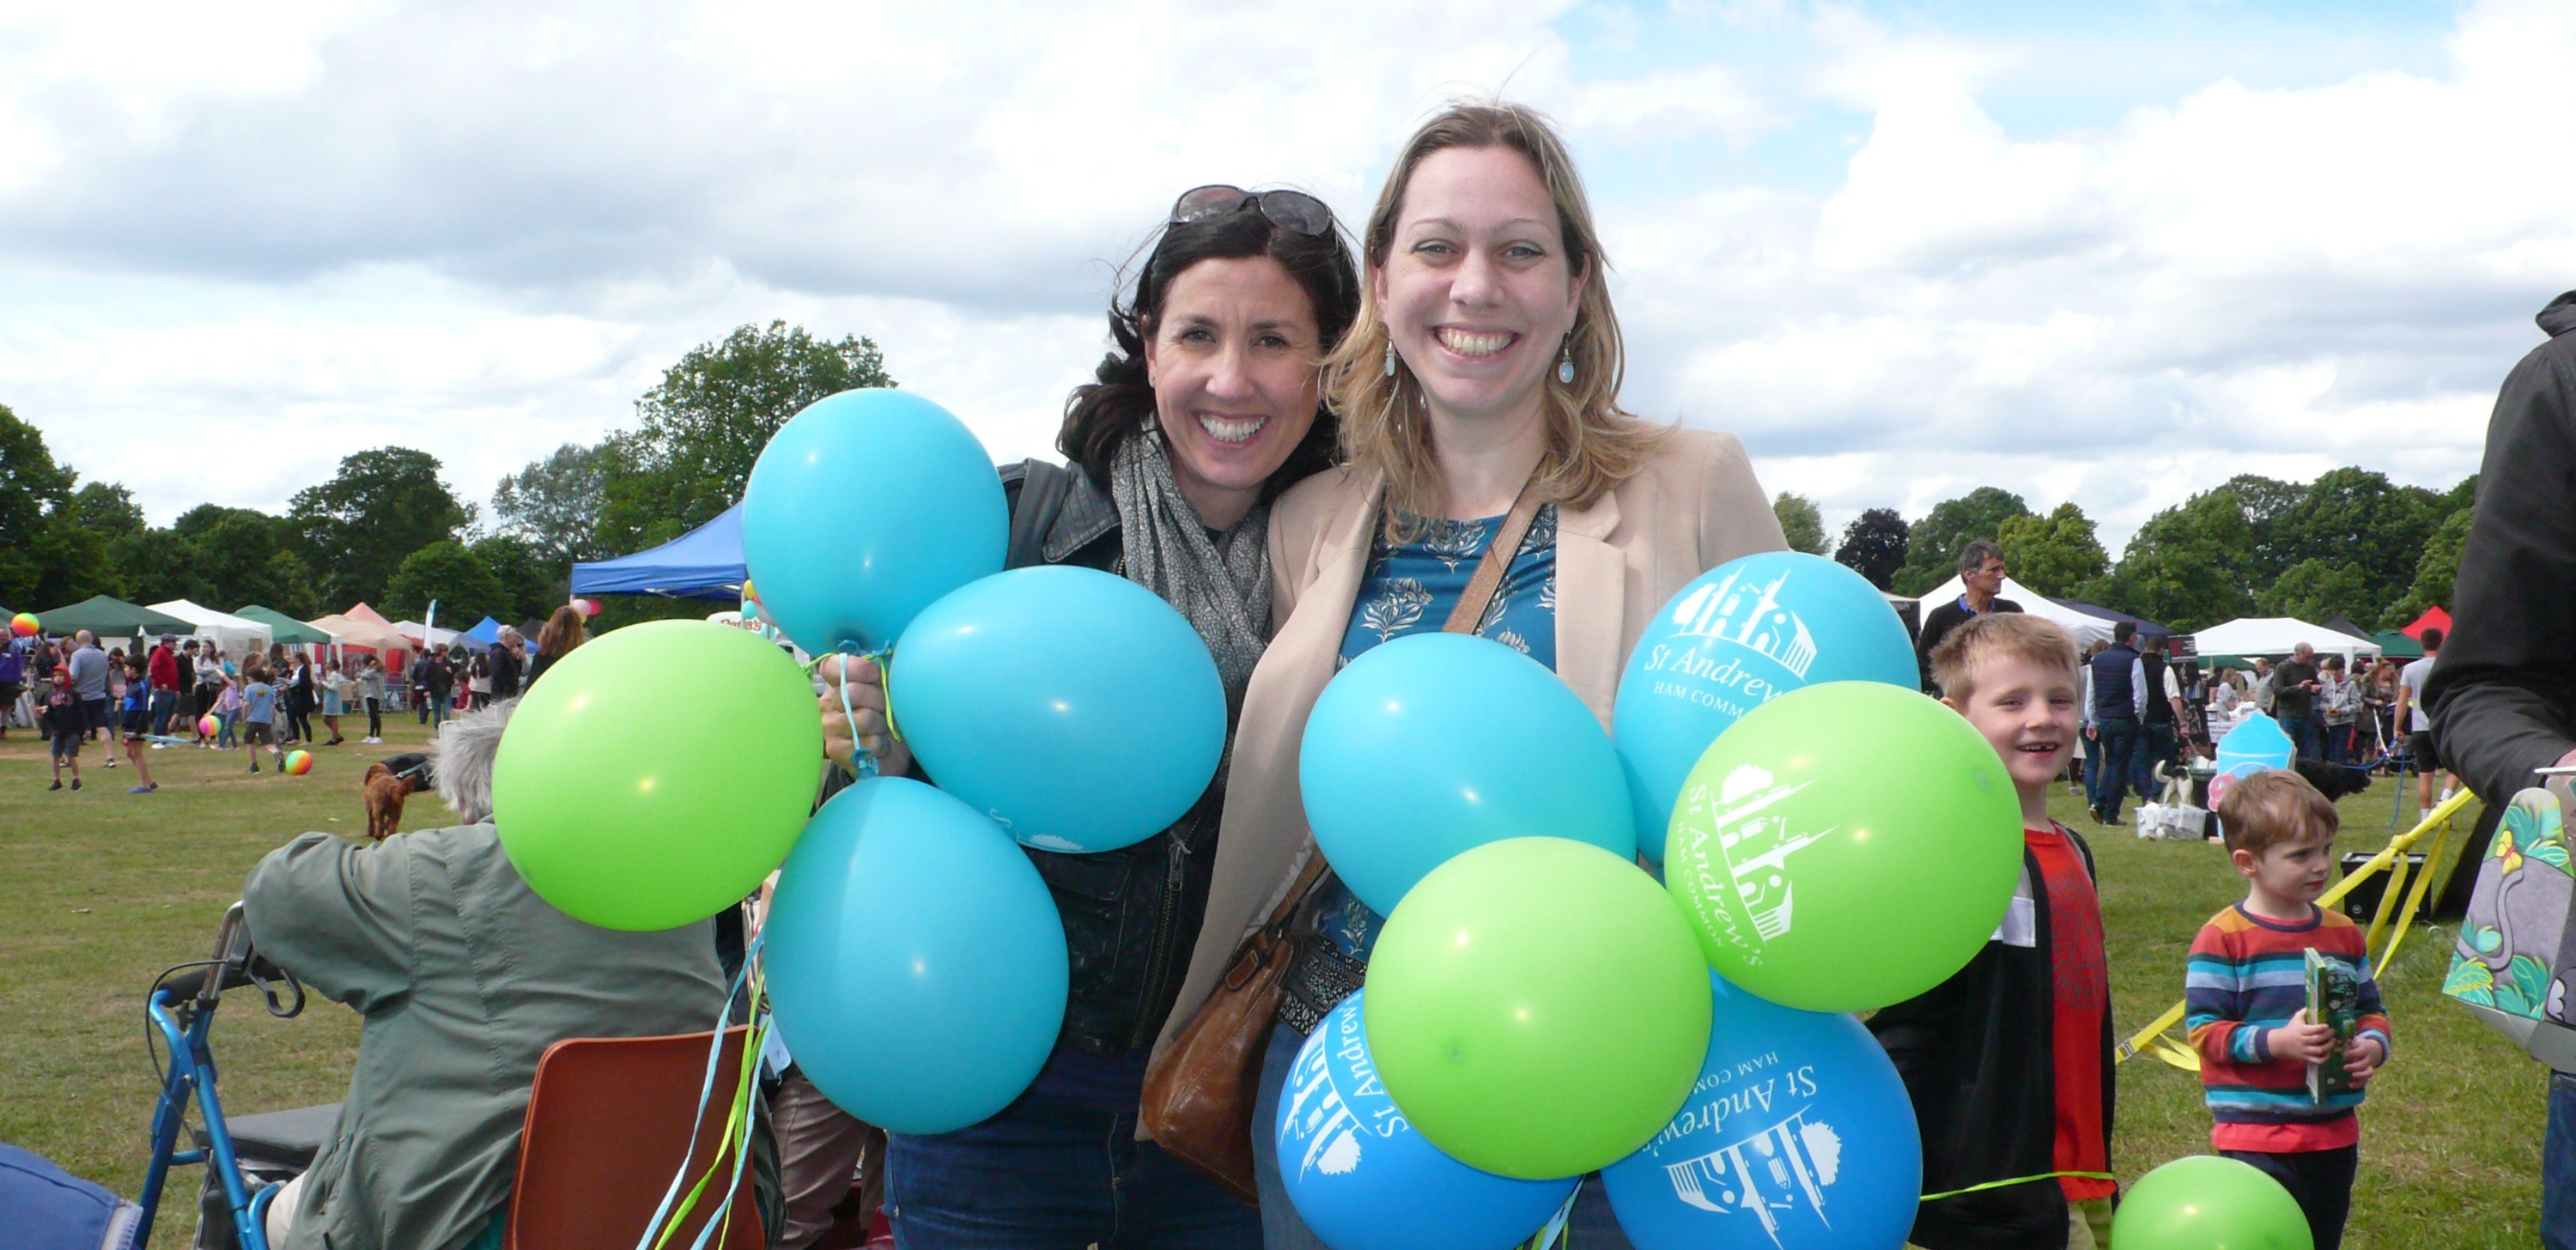 Alice, Sarah and St Andrews balloons_edi